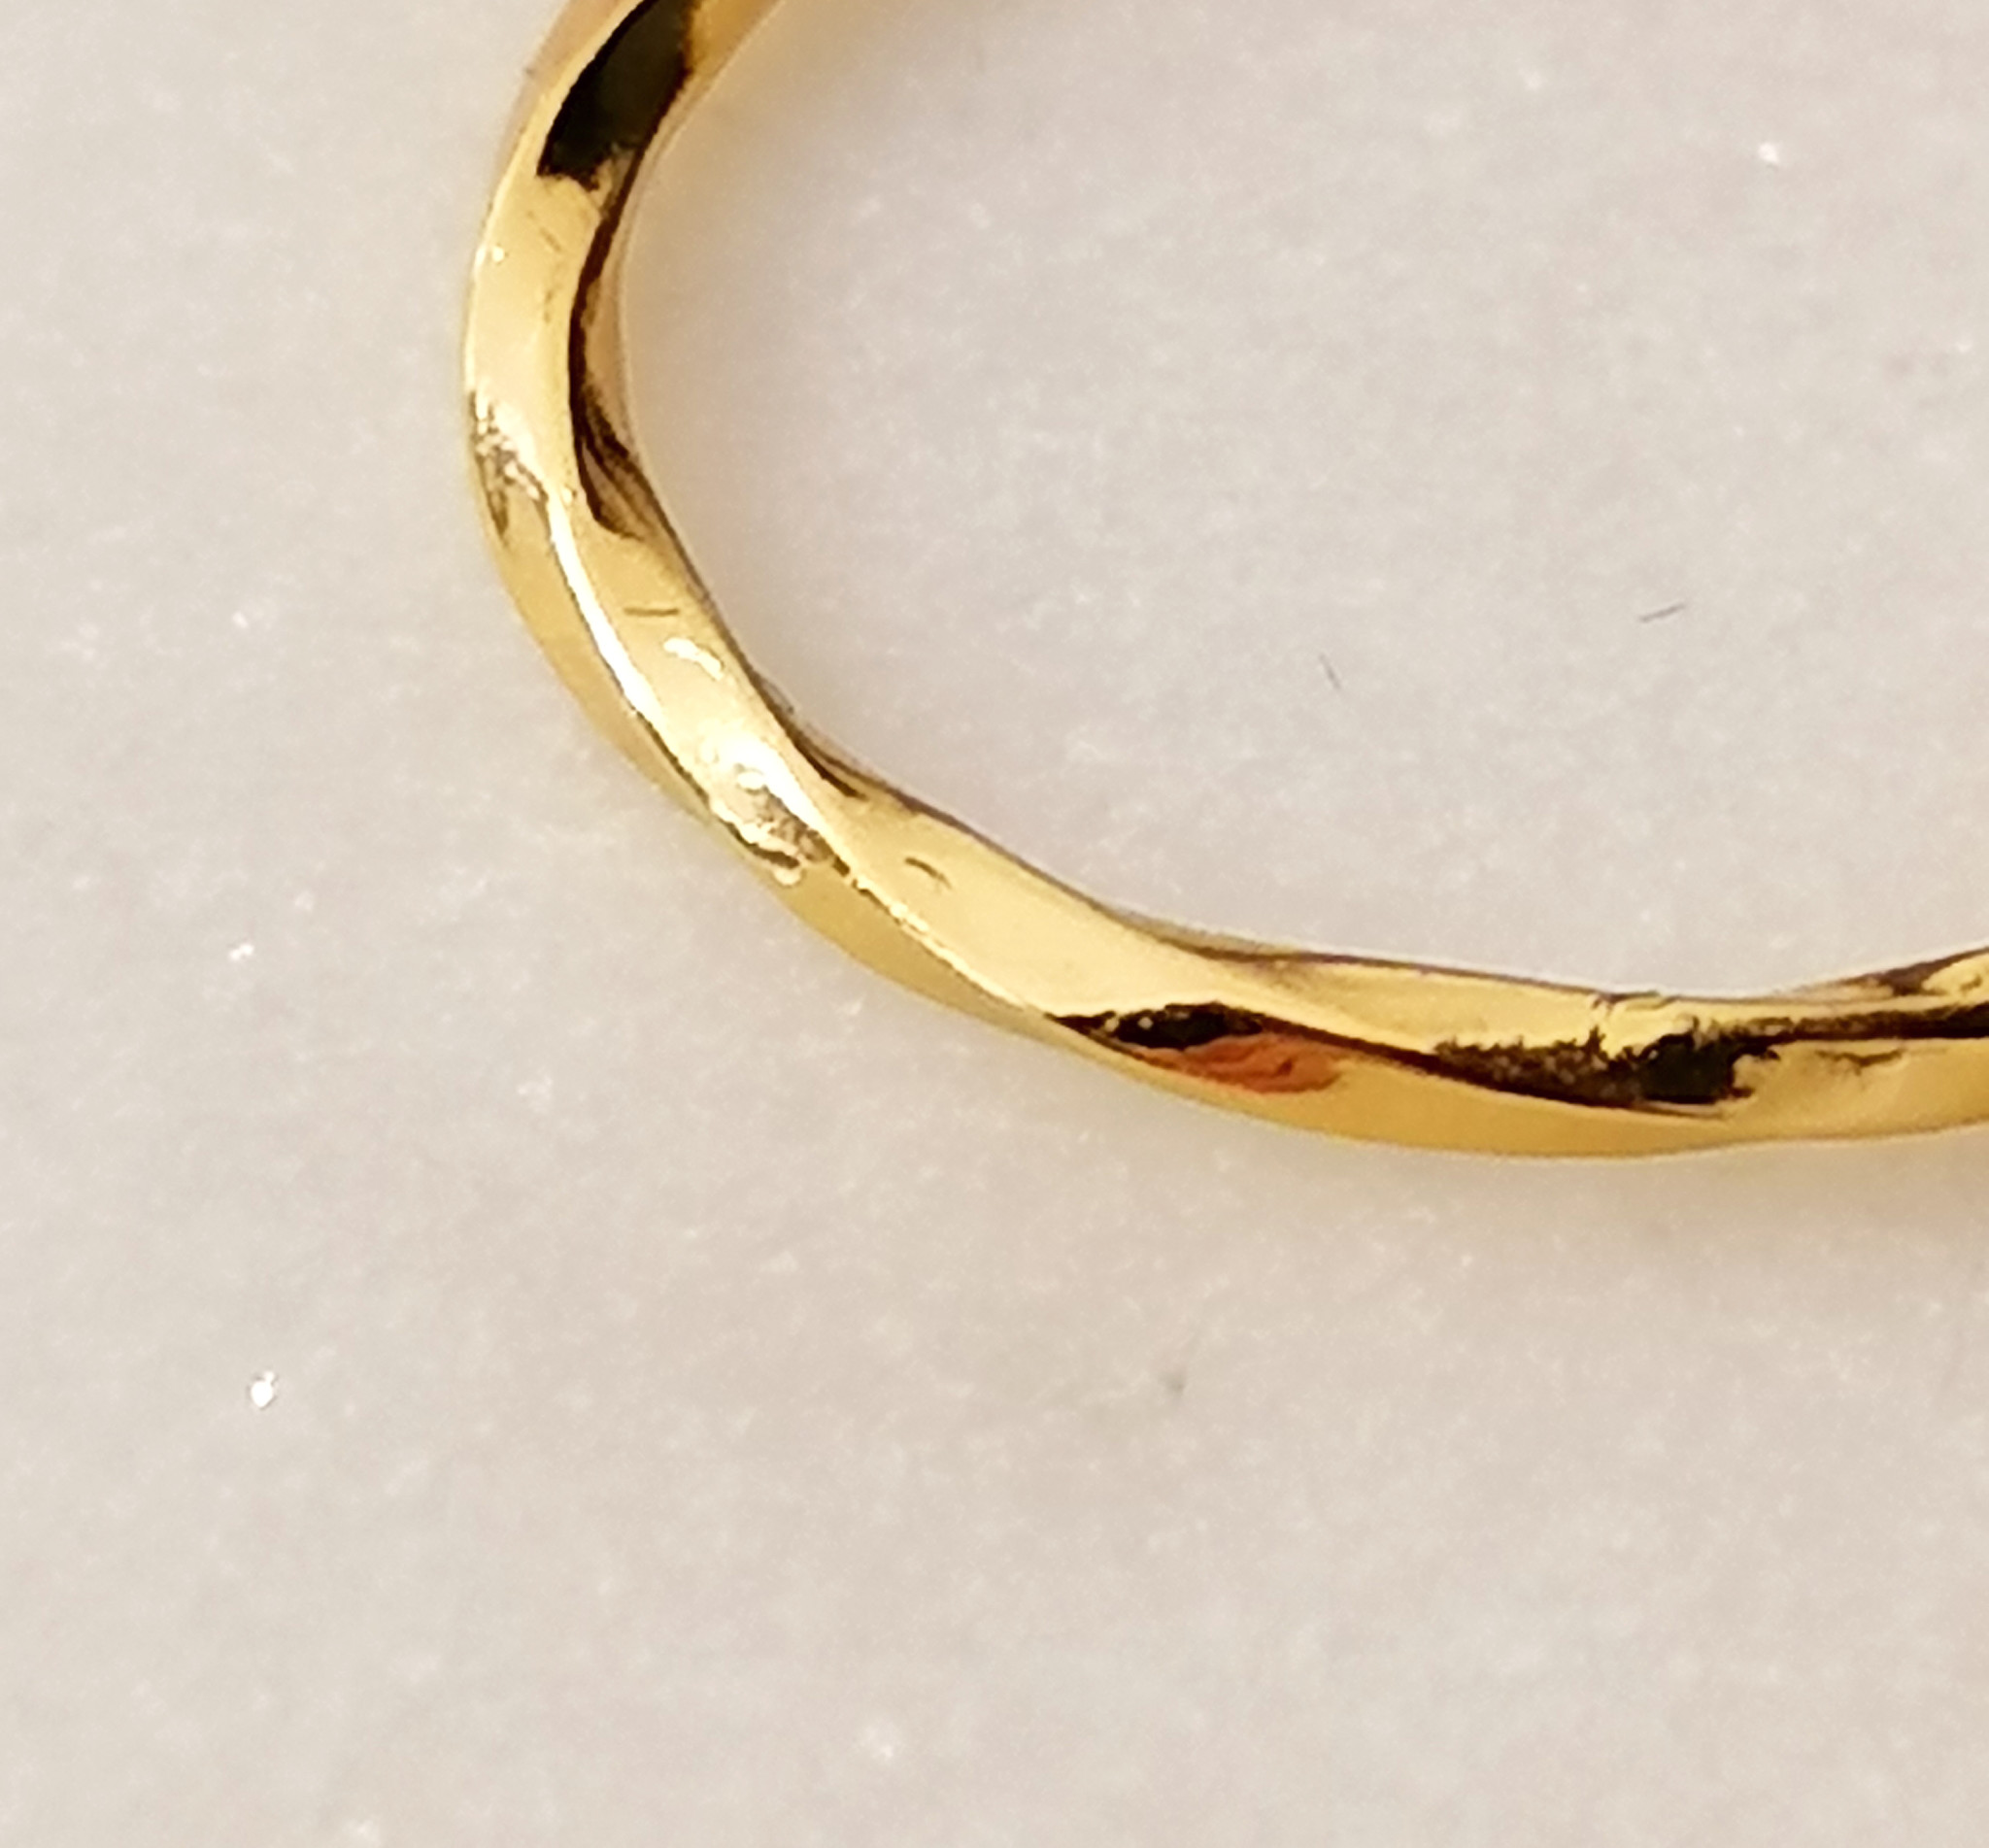 Narrow ring - entwined - 925 sterling silver - gold-5